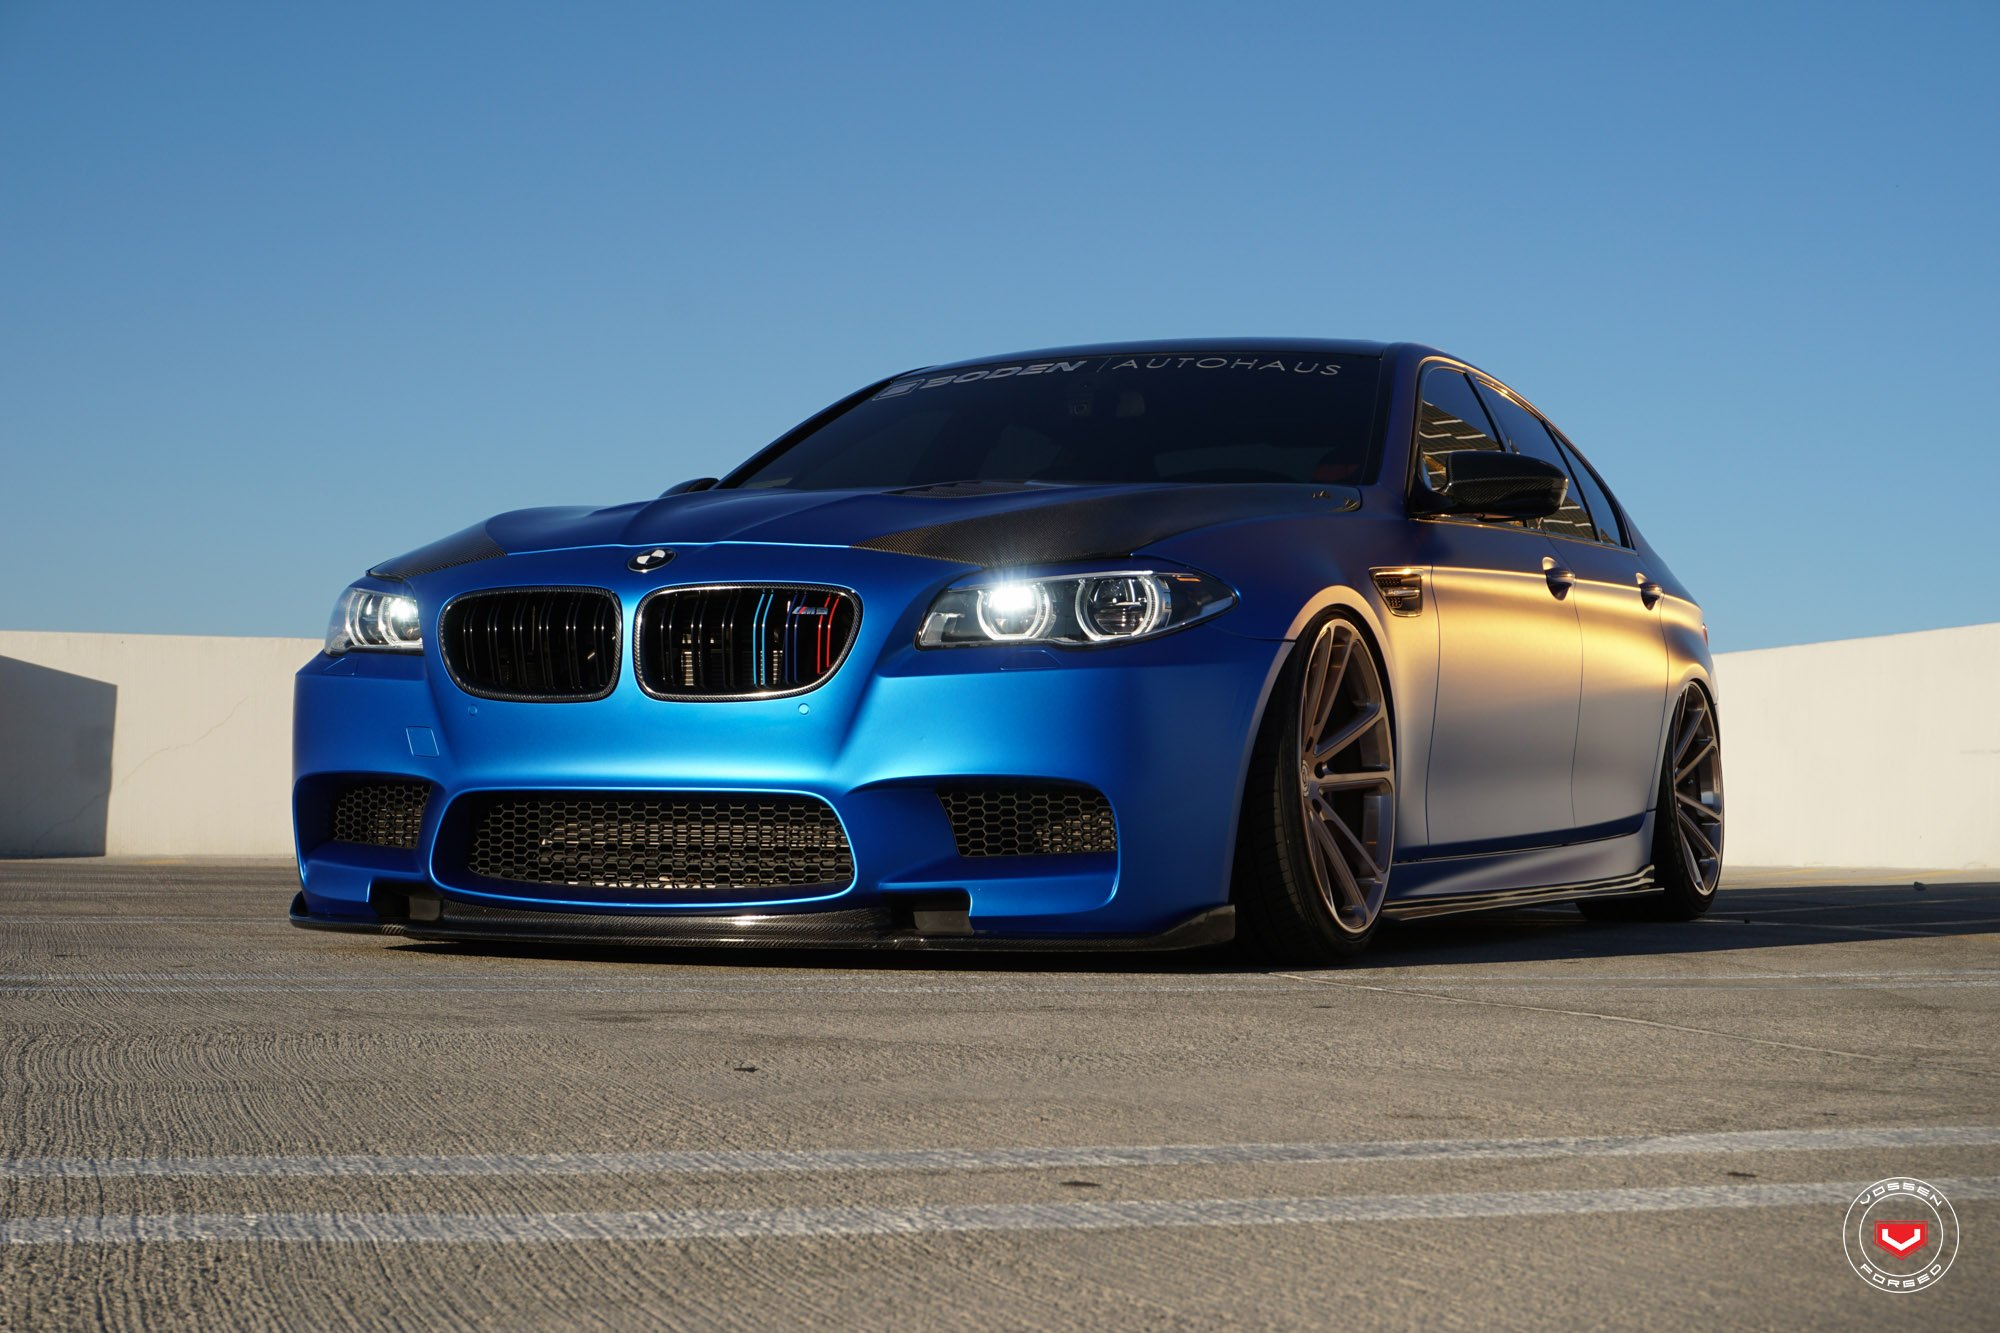 slammed bmw m5 f10 on custom painted vossens gallery. Black Bedroom Furniture Sets. Home Design Ideas